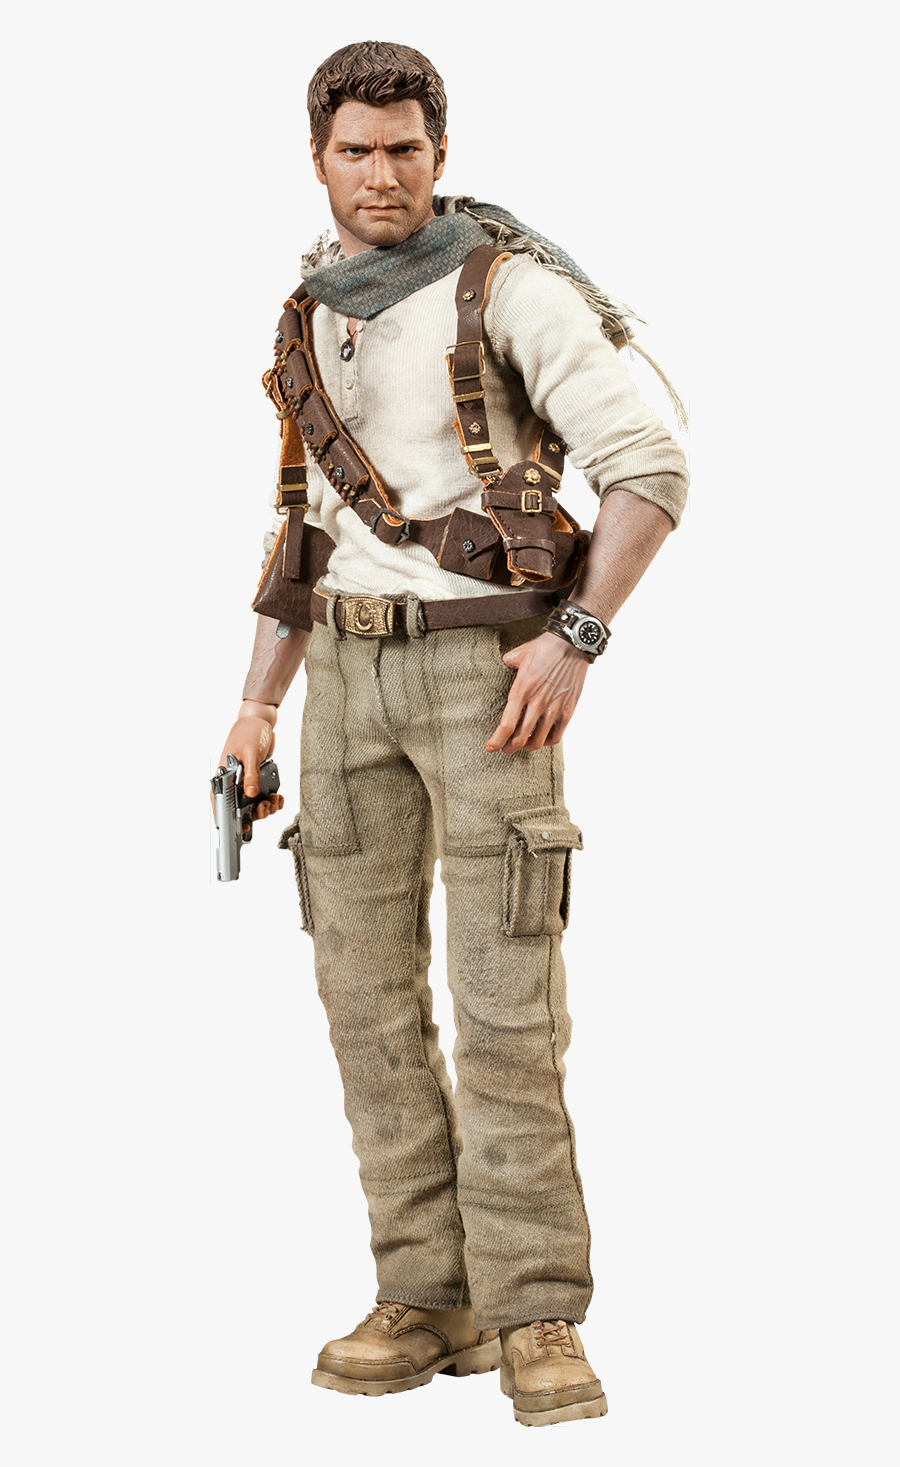 Download Nathan Drake Png Photos - Action Figure Uncharted 4, Transparent Clipart